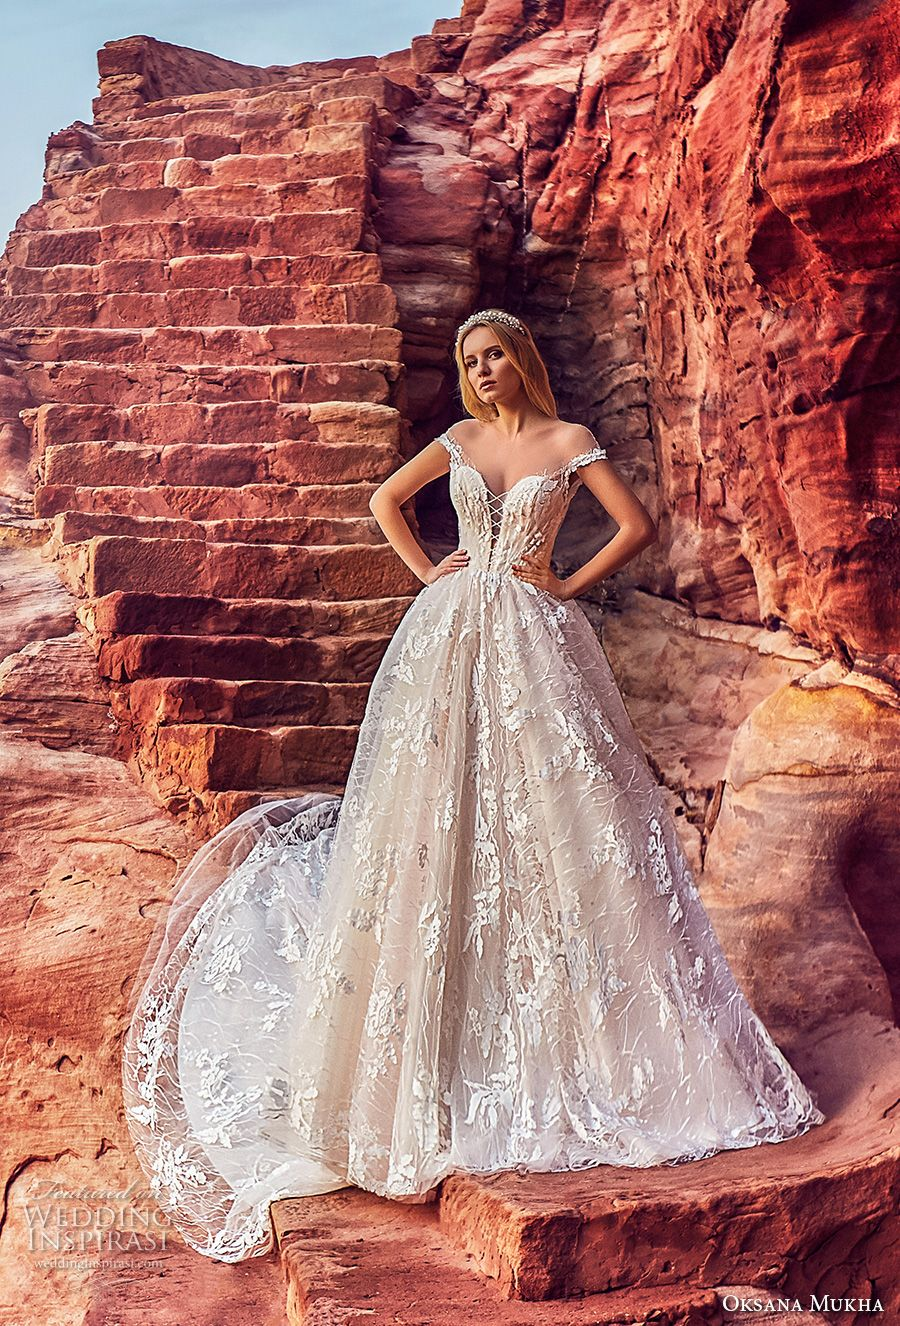 Oksana mukha wedding dresses auras ball gowns and wedding dress